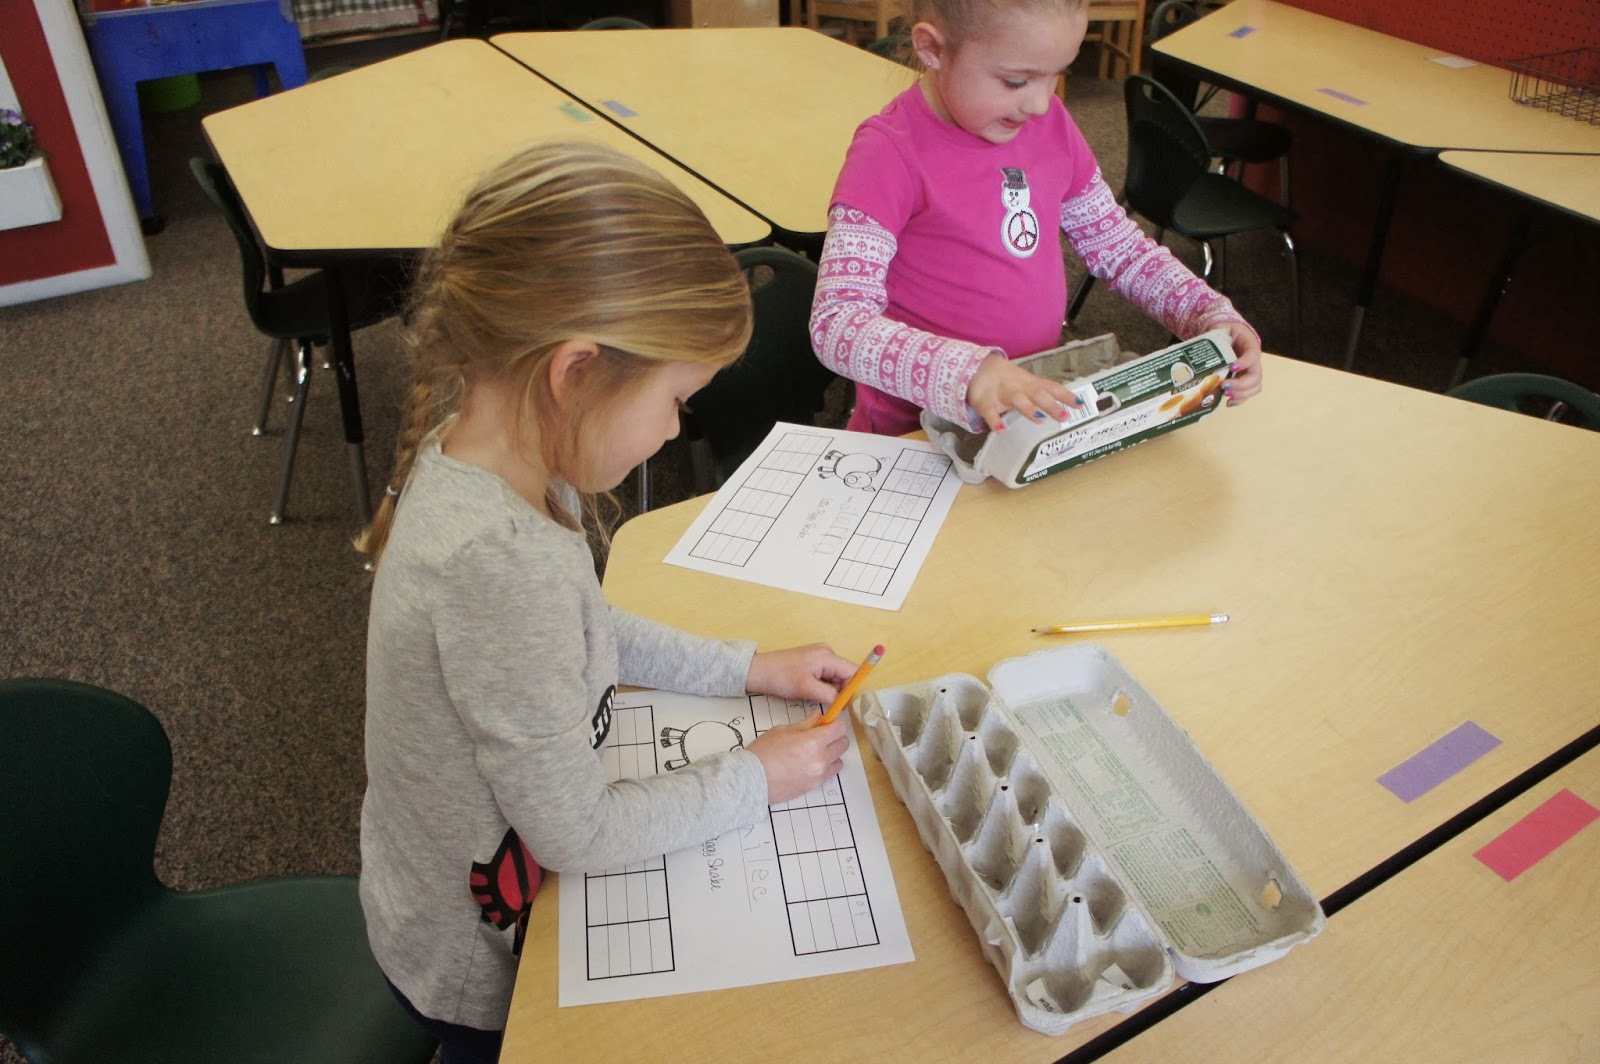 We practice sight words by shaking a little pig in an egg carton and writing down the sight word he lands on.